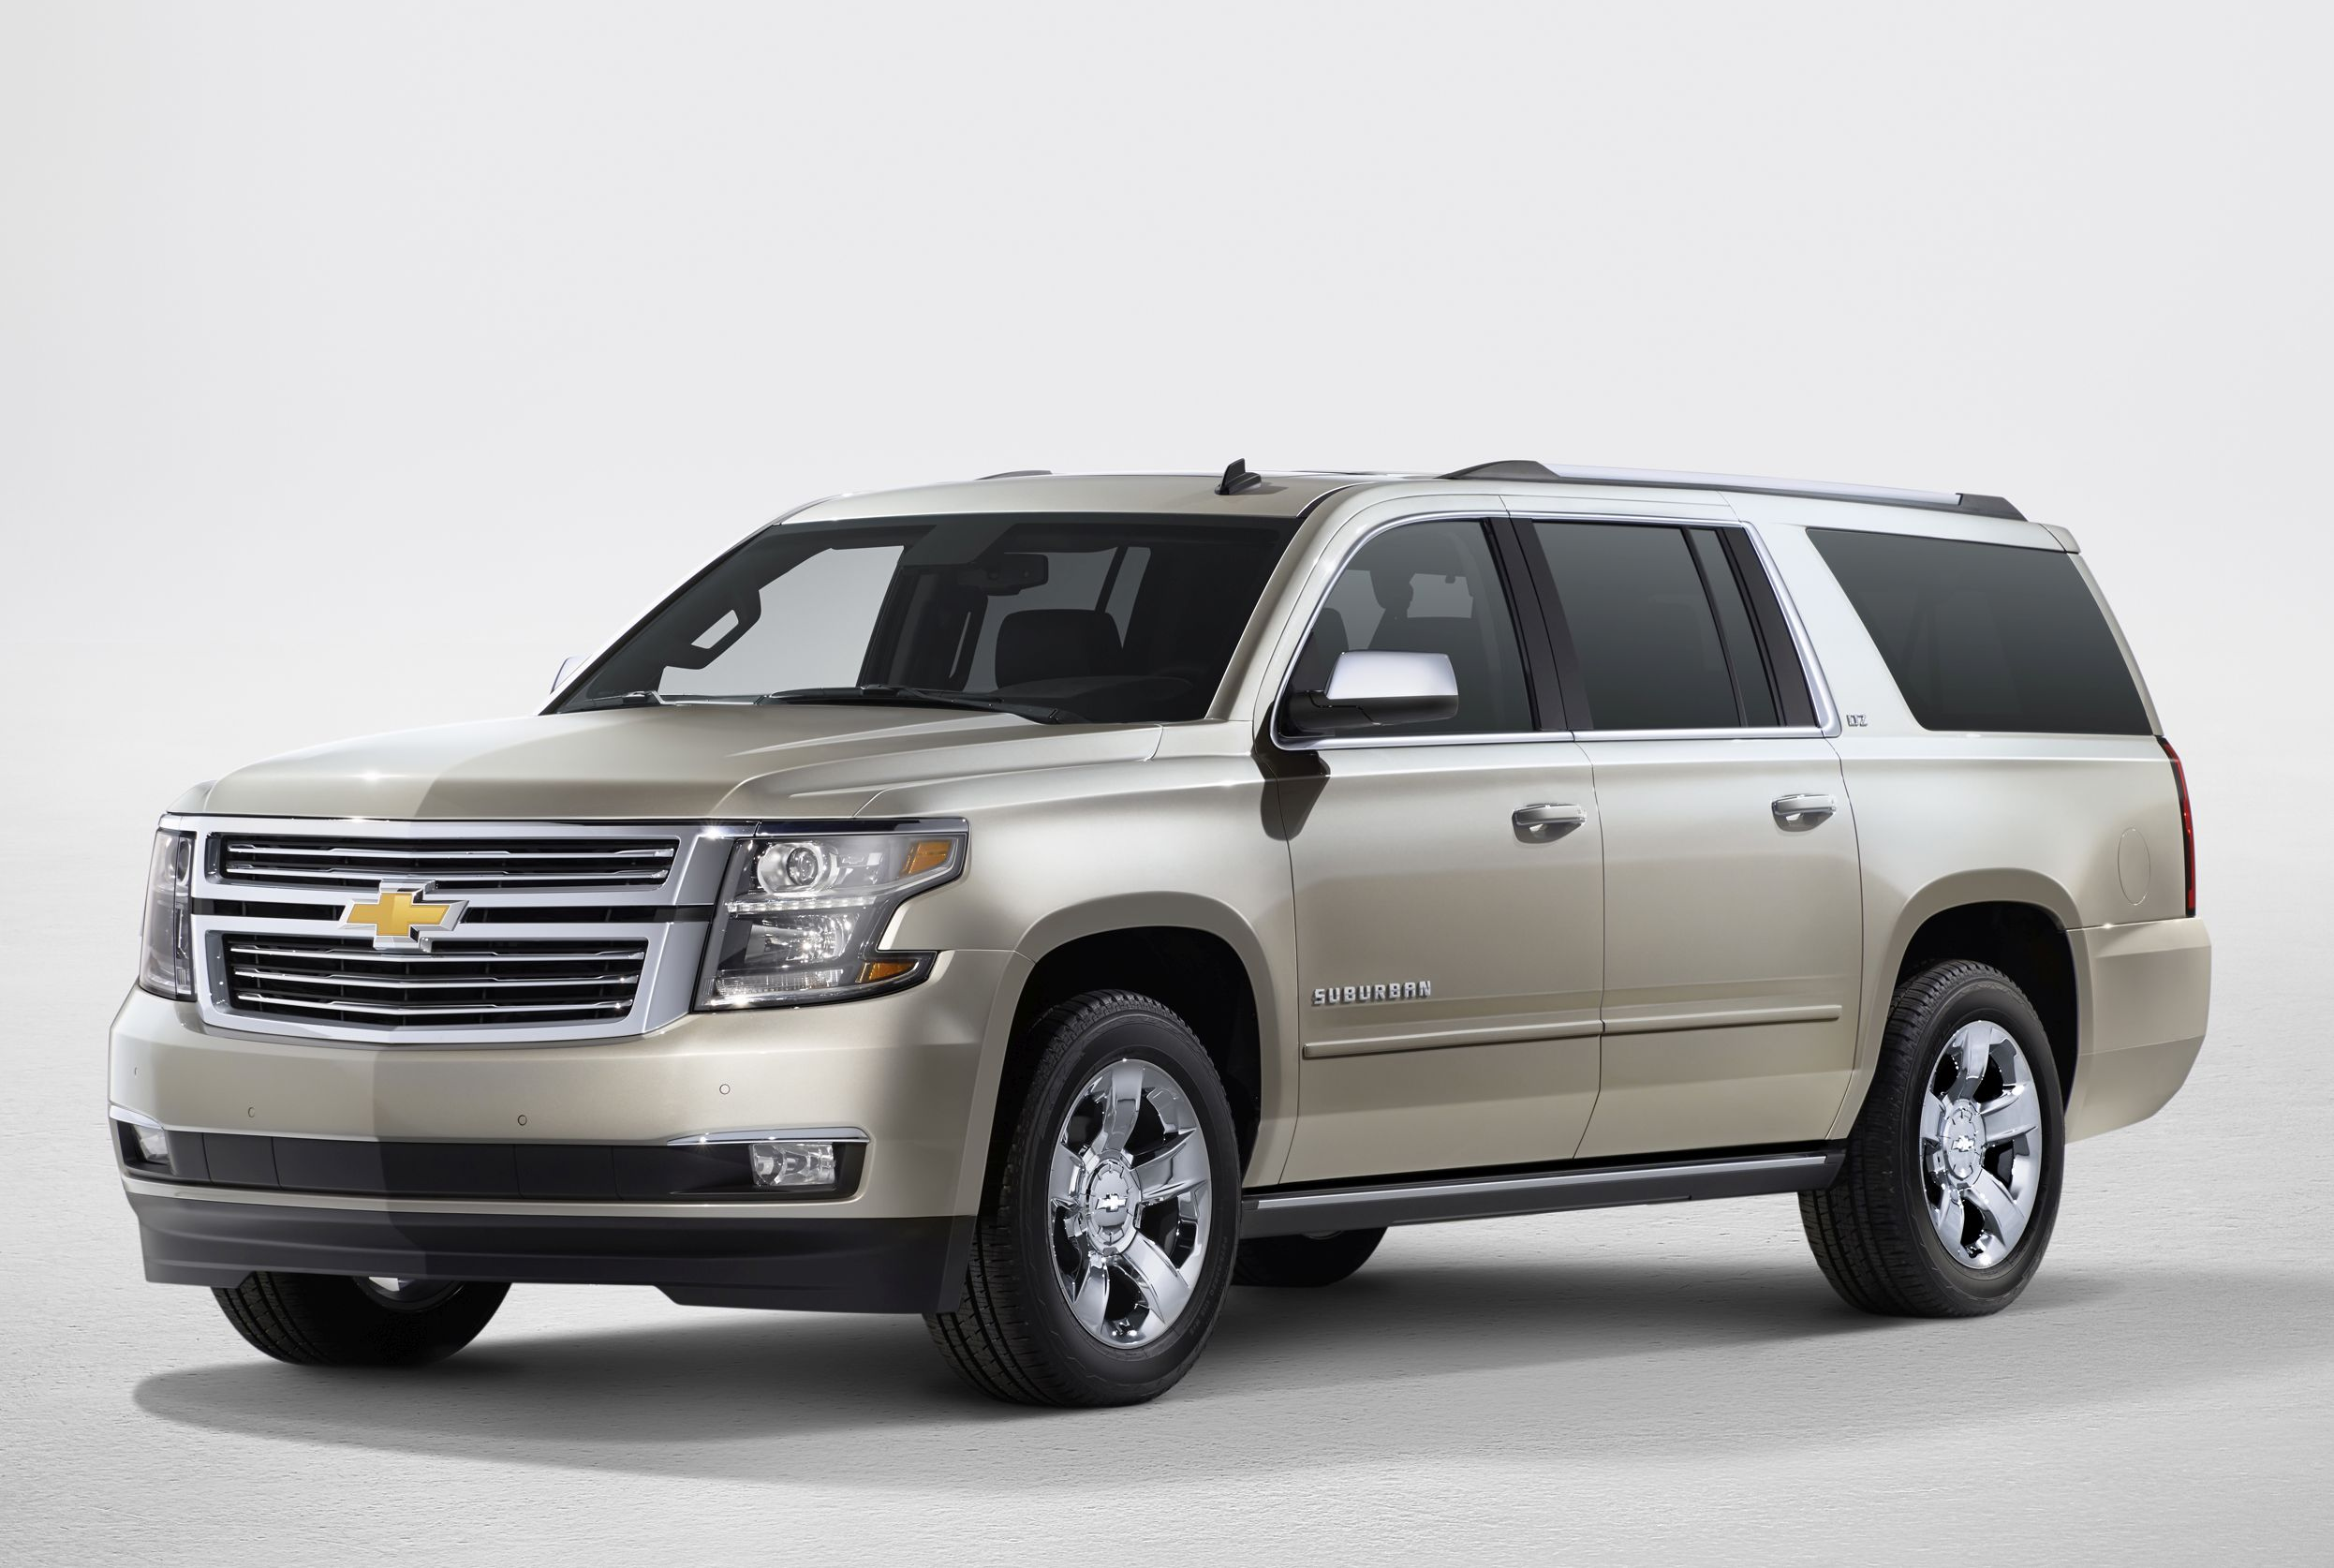 Chevrolet Suburban HD Offered to Feds, Security Fleets